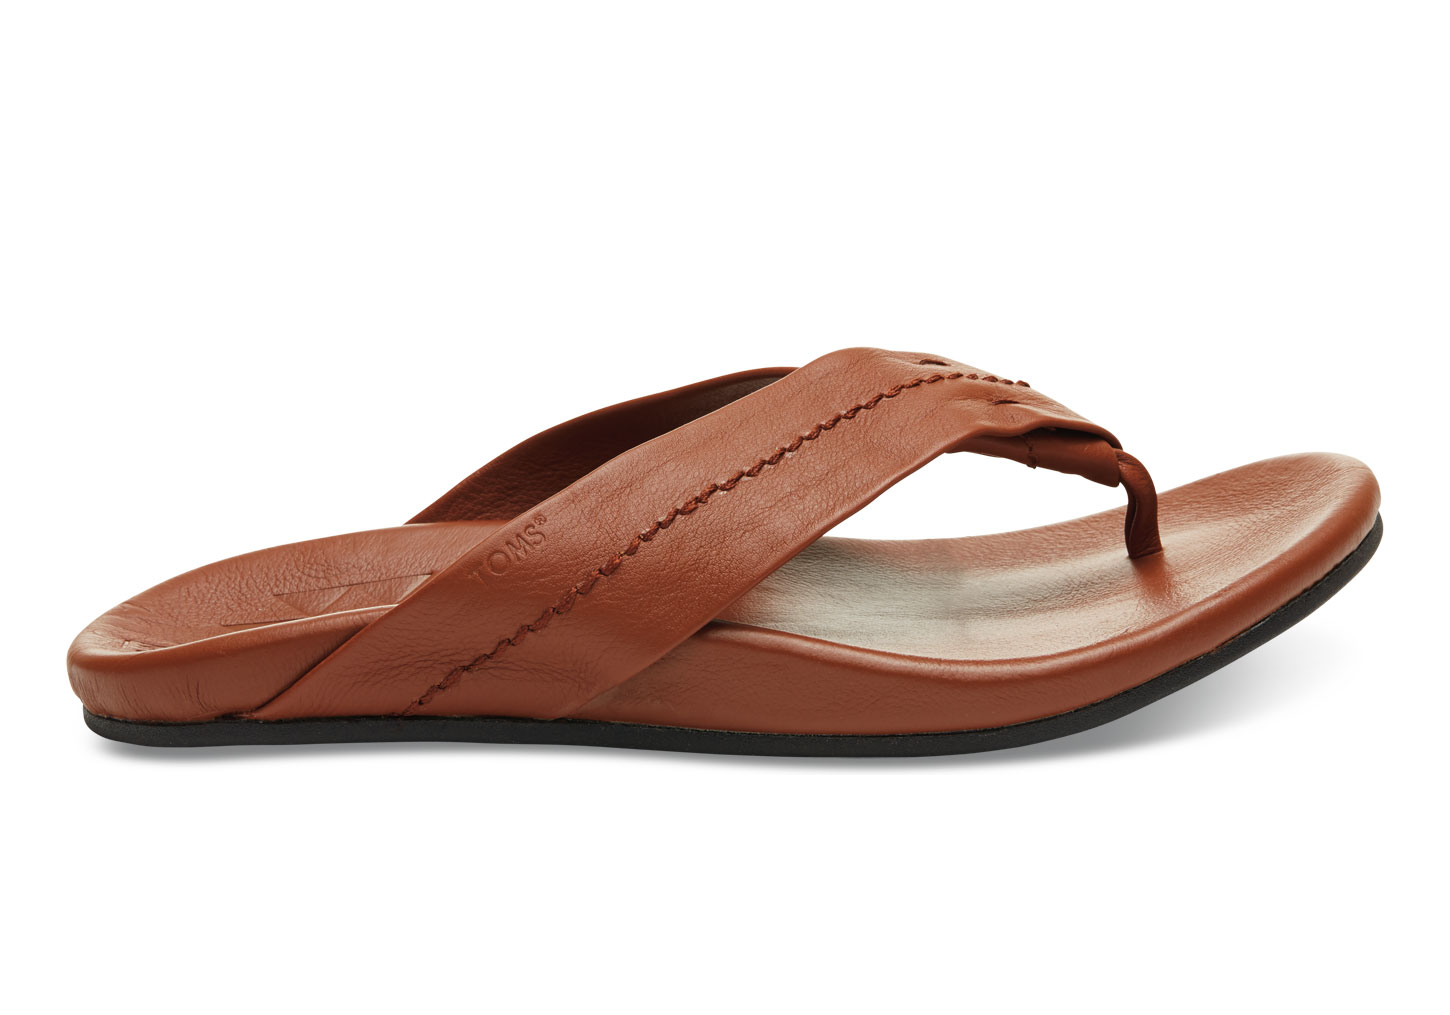 3b0e581a51 TOMS Brown Full-grain Leather Men's Semana Flip Flops in Brown for ...